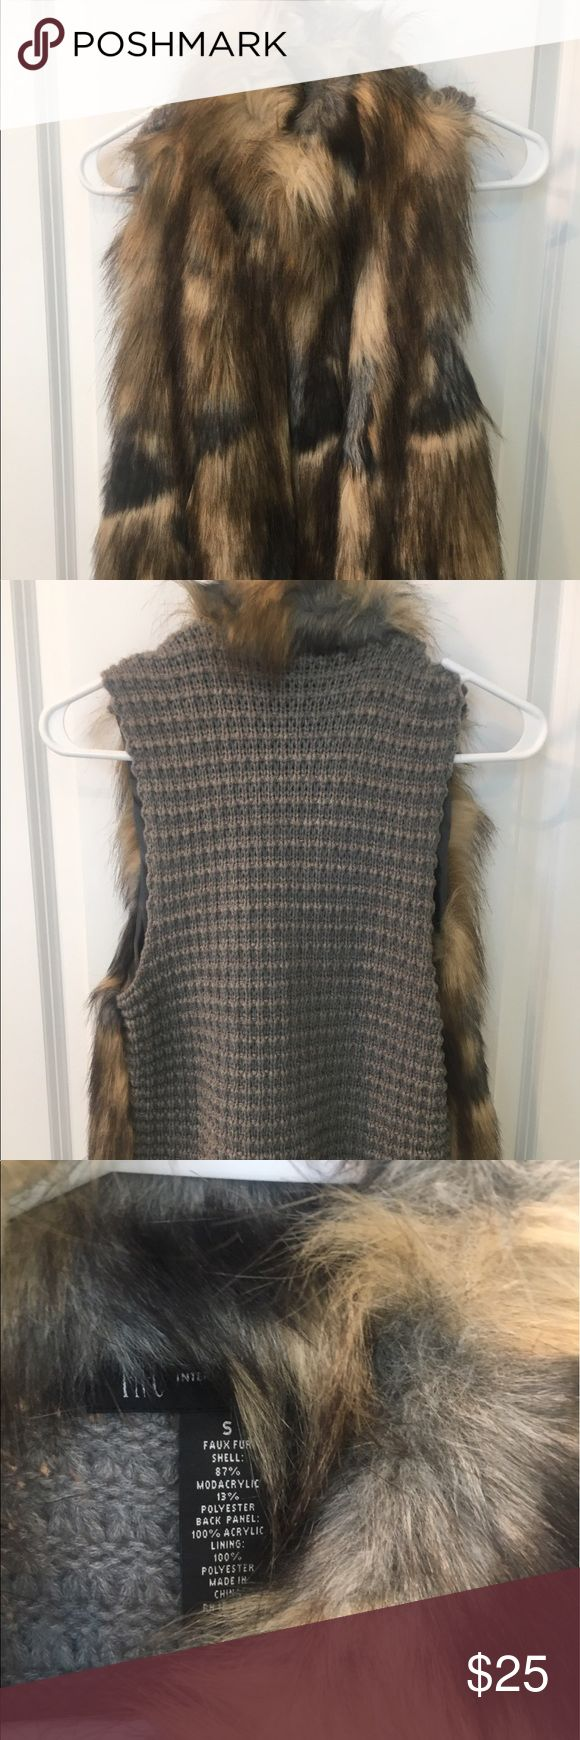 New INC faux fur vest New INC faux fur vest. No tags but never worn. It is beige and black with high neck and grey knit on the back. INC International Concepts Other